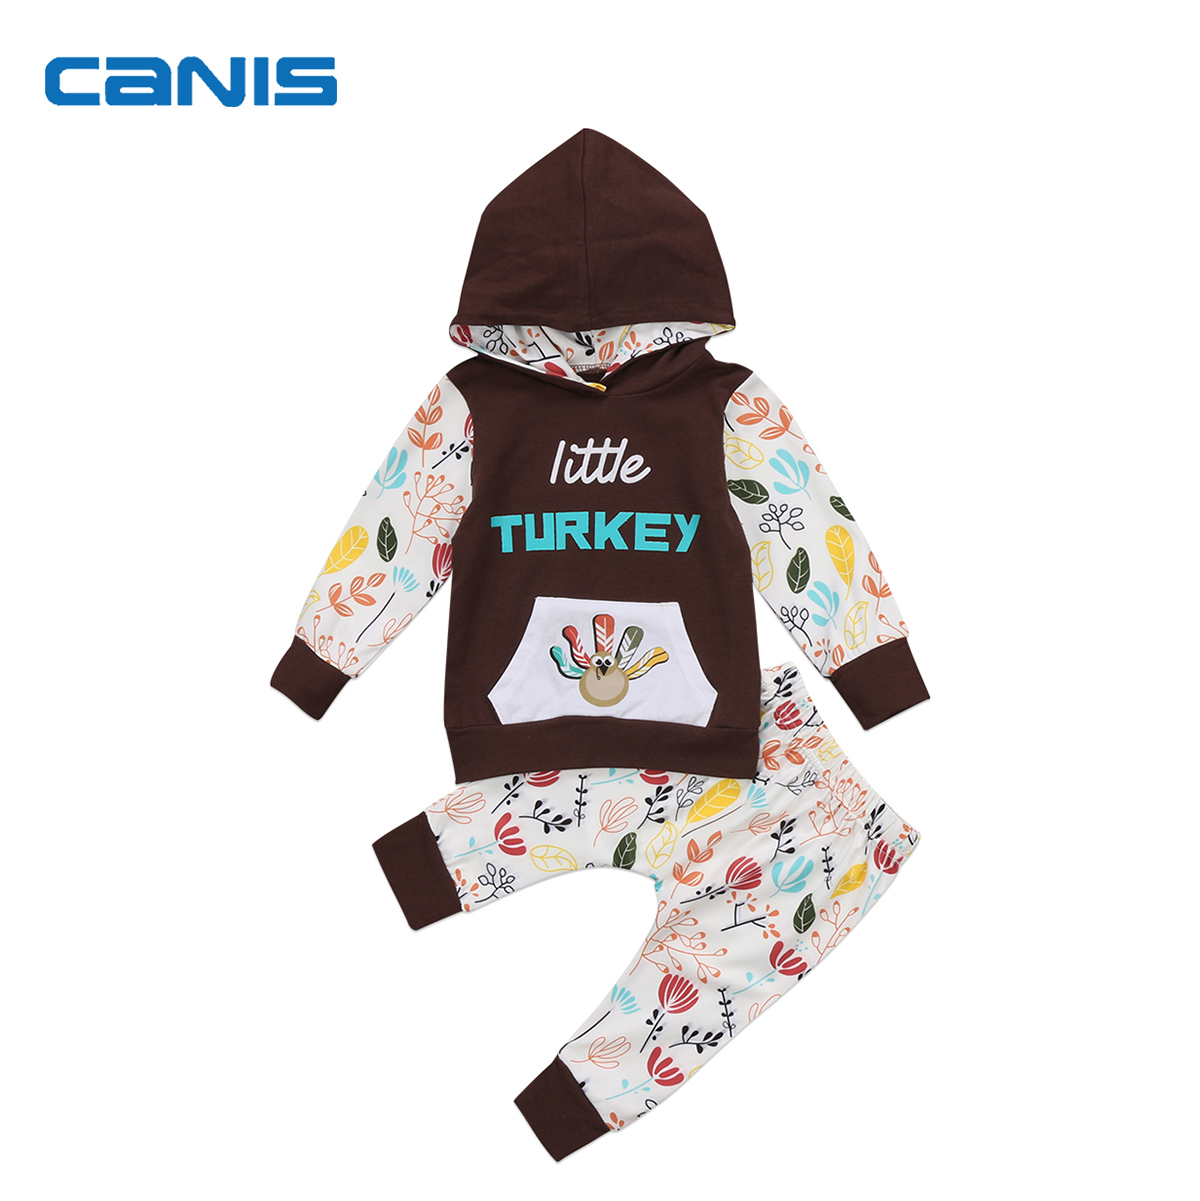 2017 Brand New Toddler Infant Newborn Baby Kids Boys Girls Clothes Hooded Long Sleeve Tops Long Pants Sets Turkey Printed Outfit